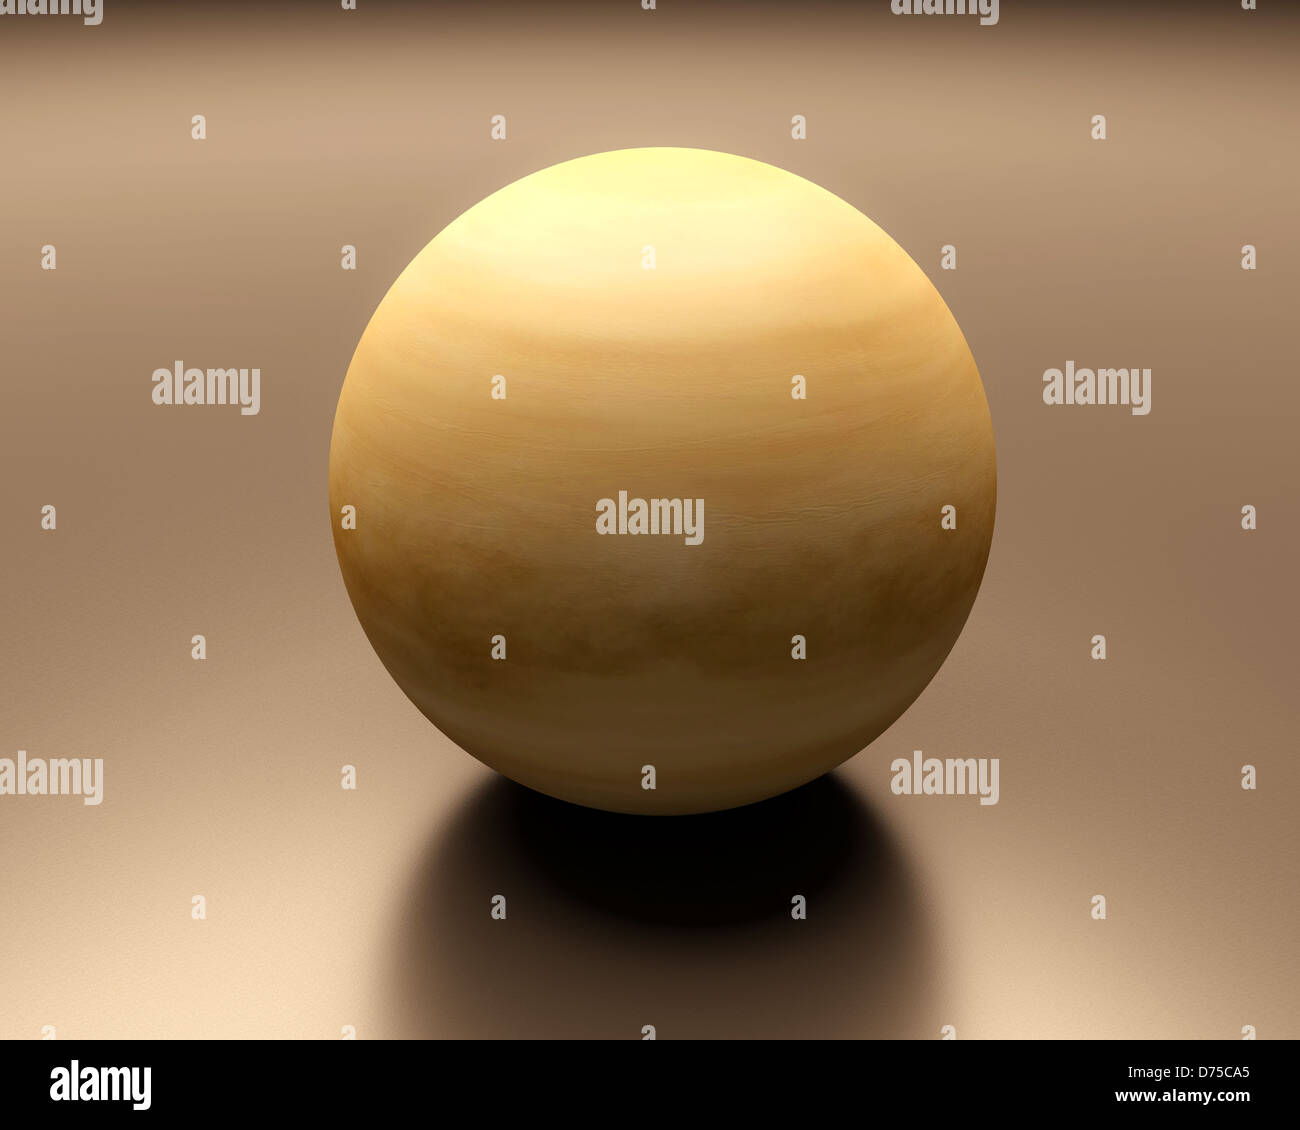 A rendered presentation of the planet Venus. - Stock Image